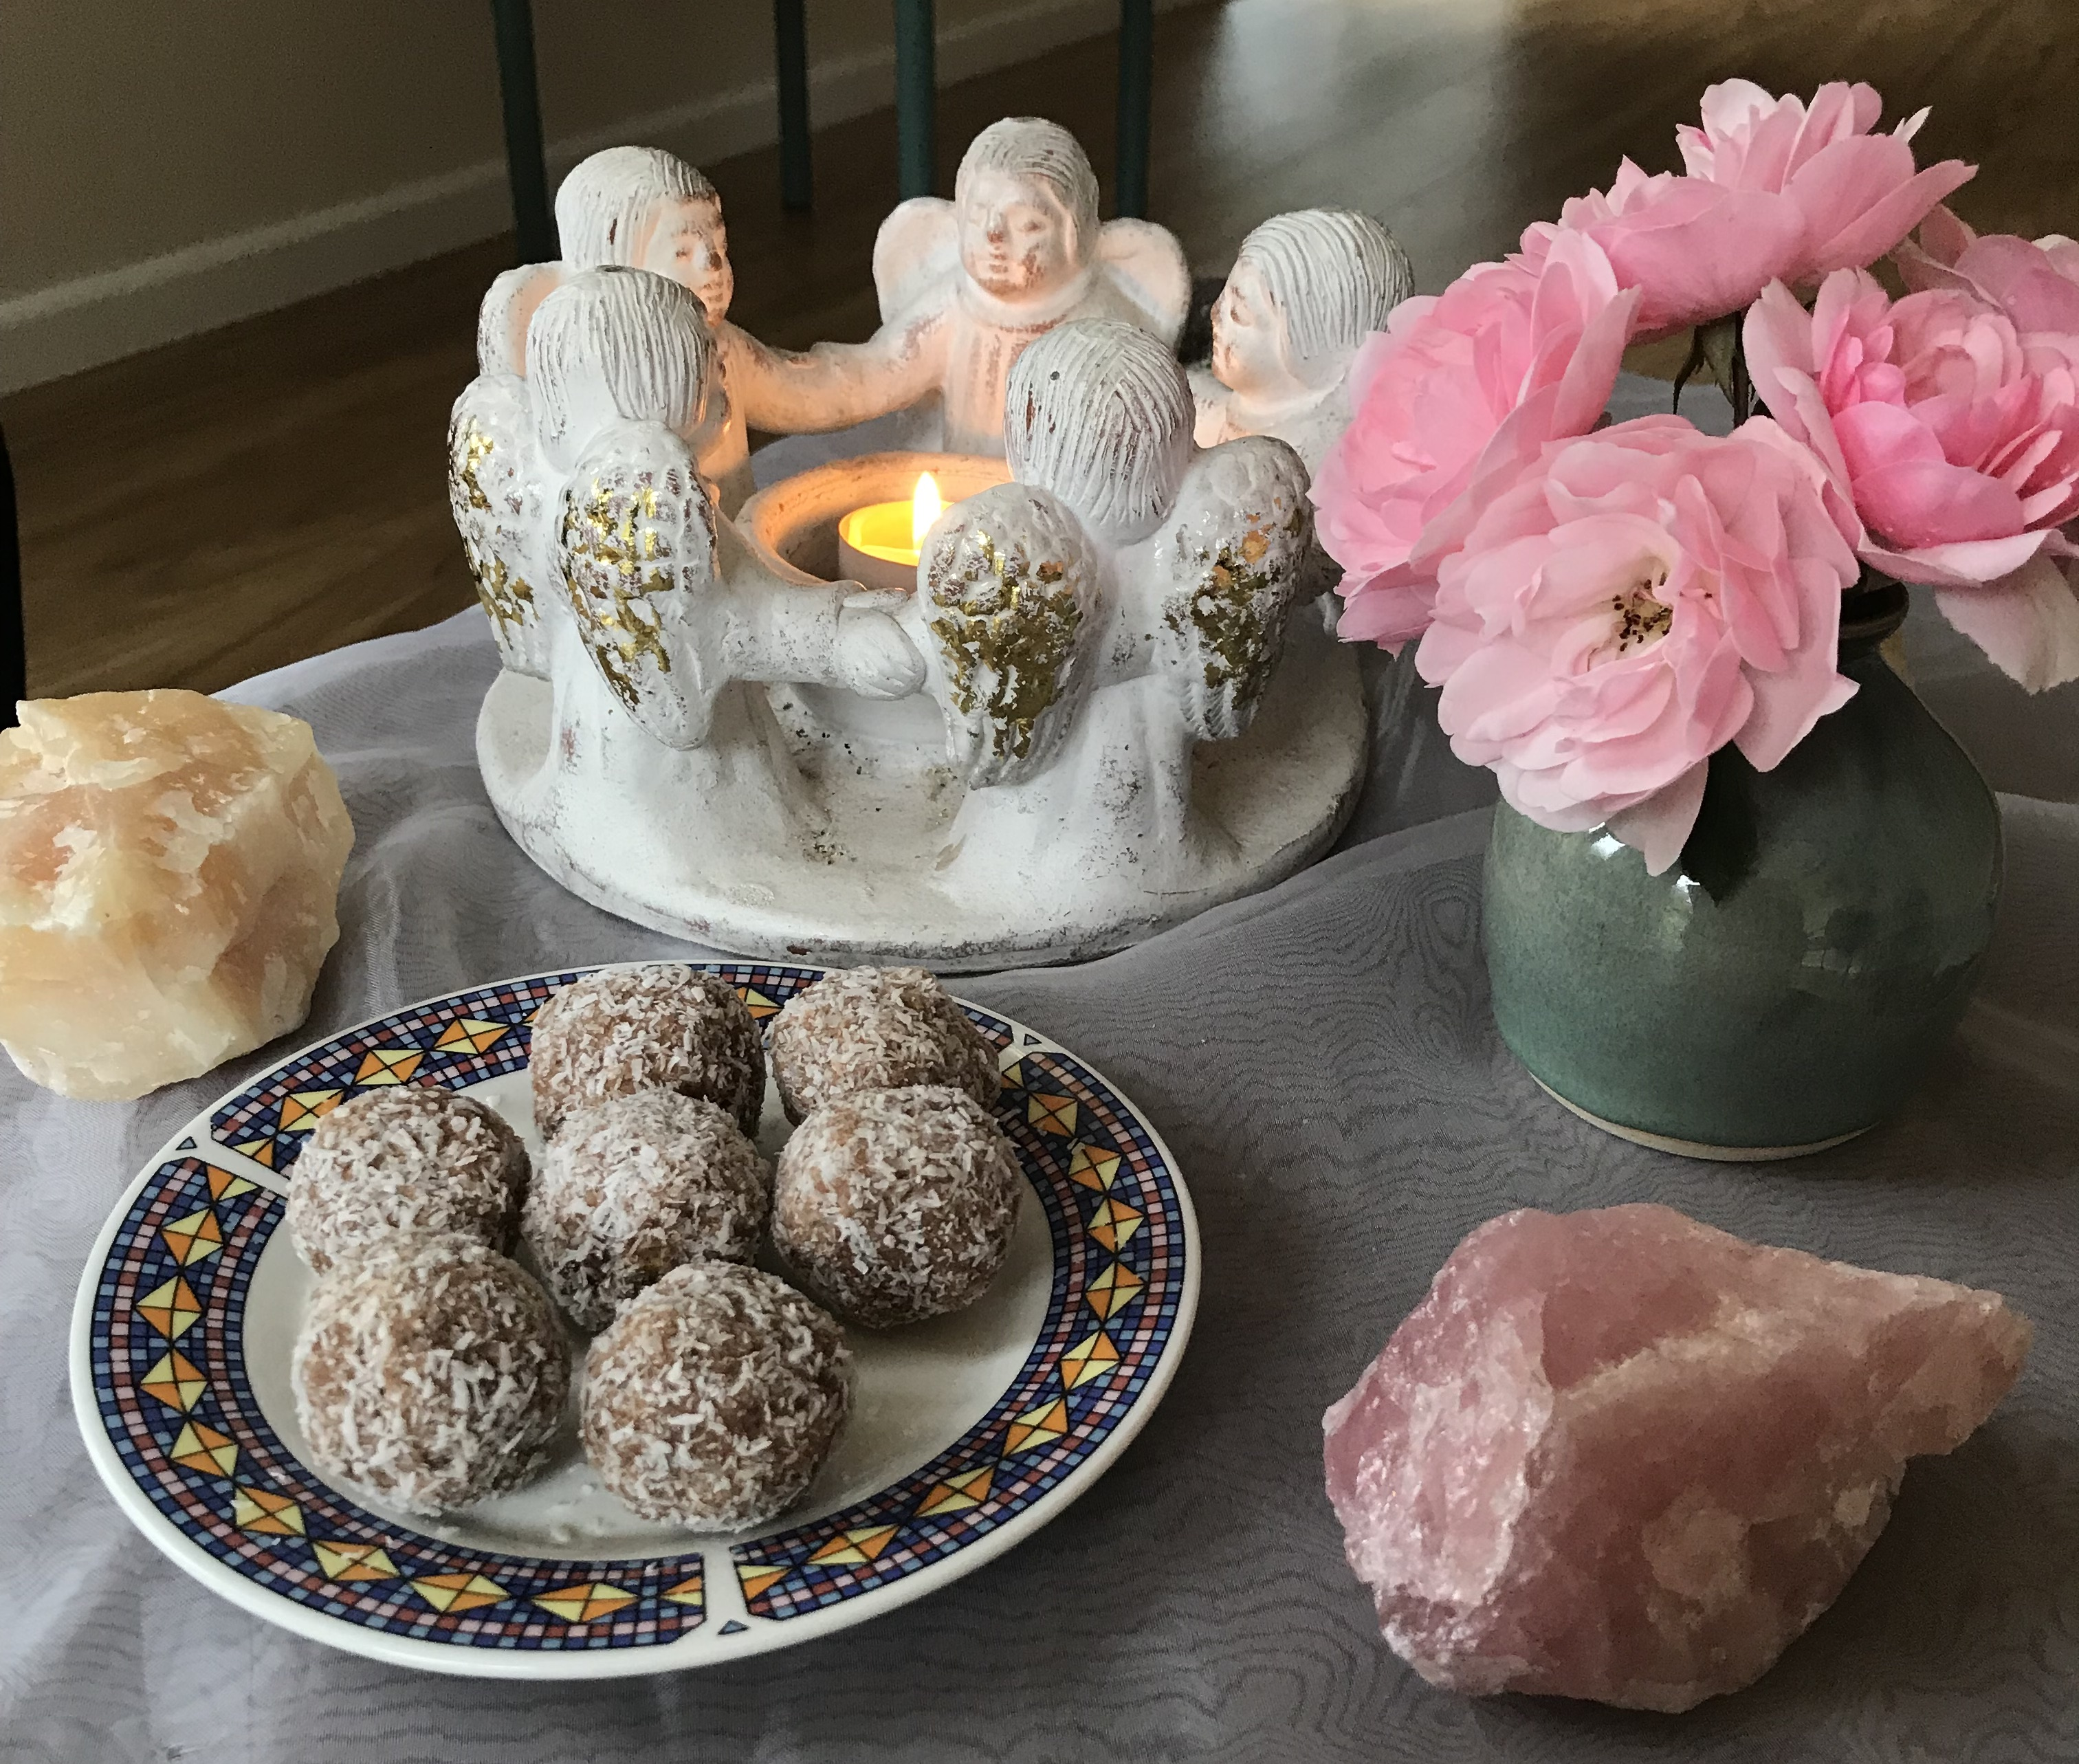 Crystals and roses